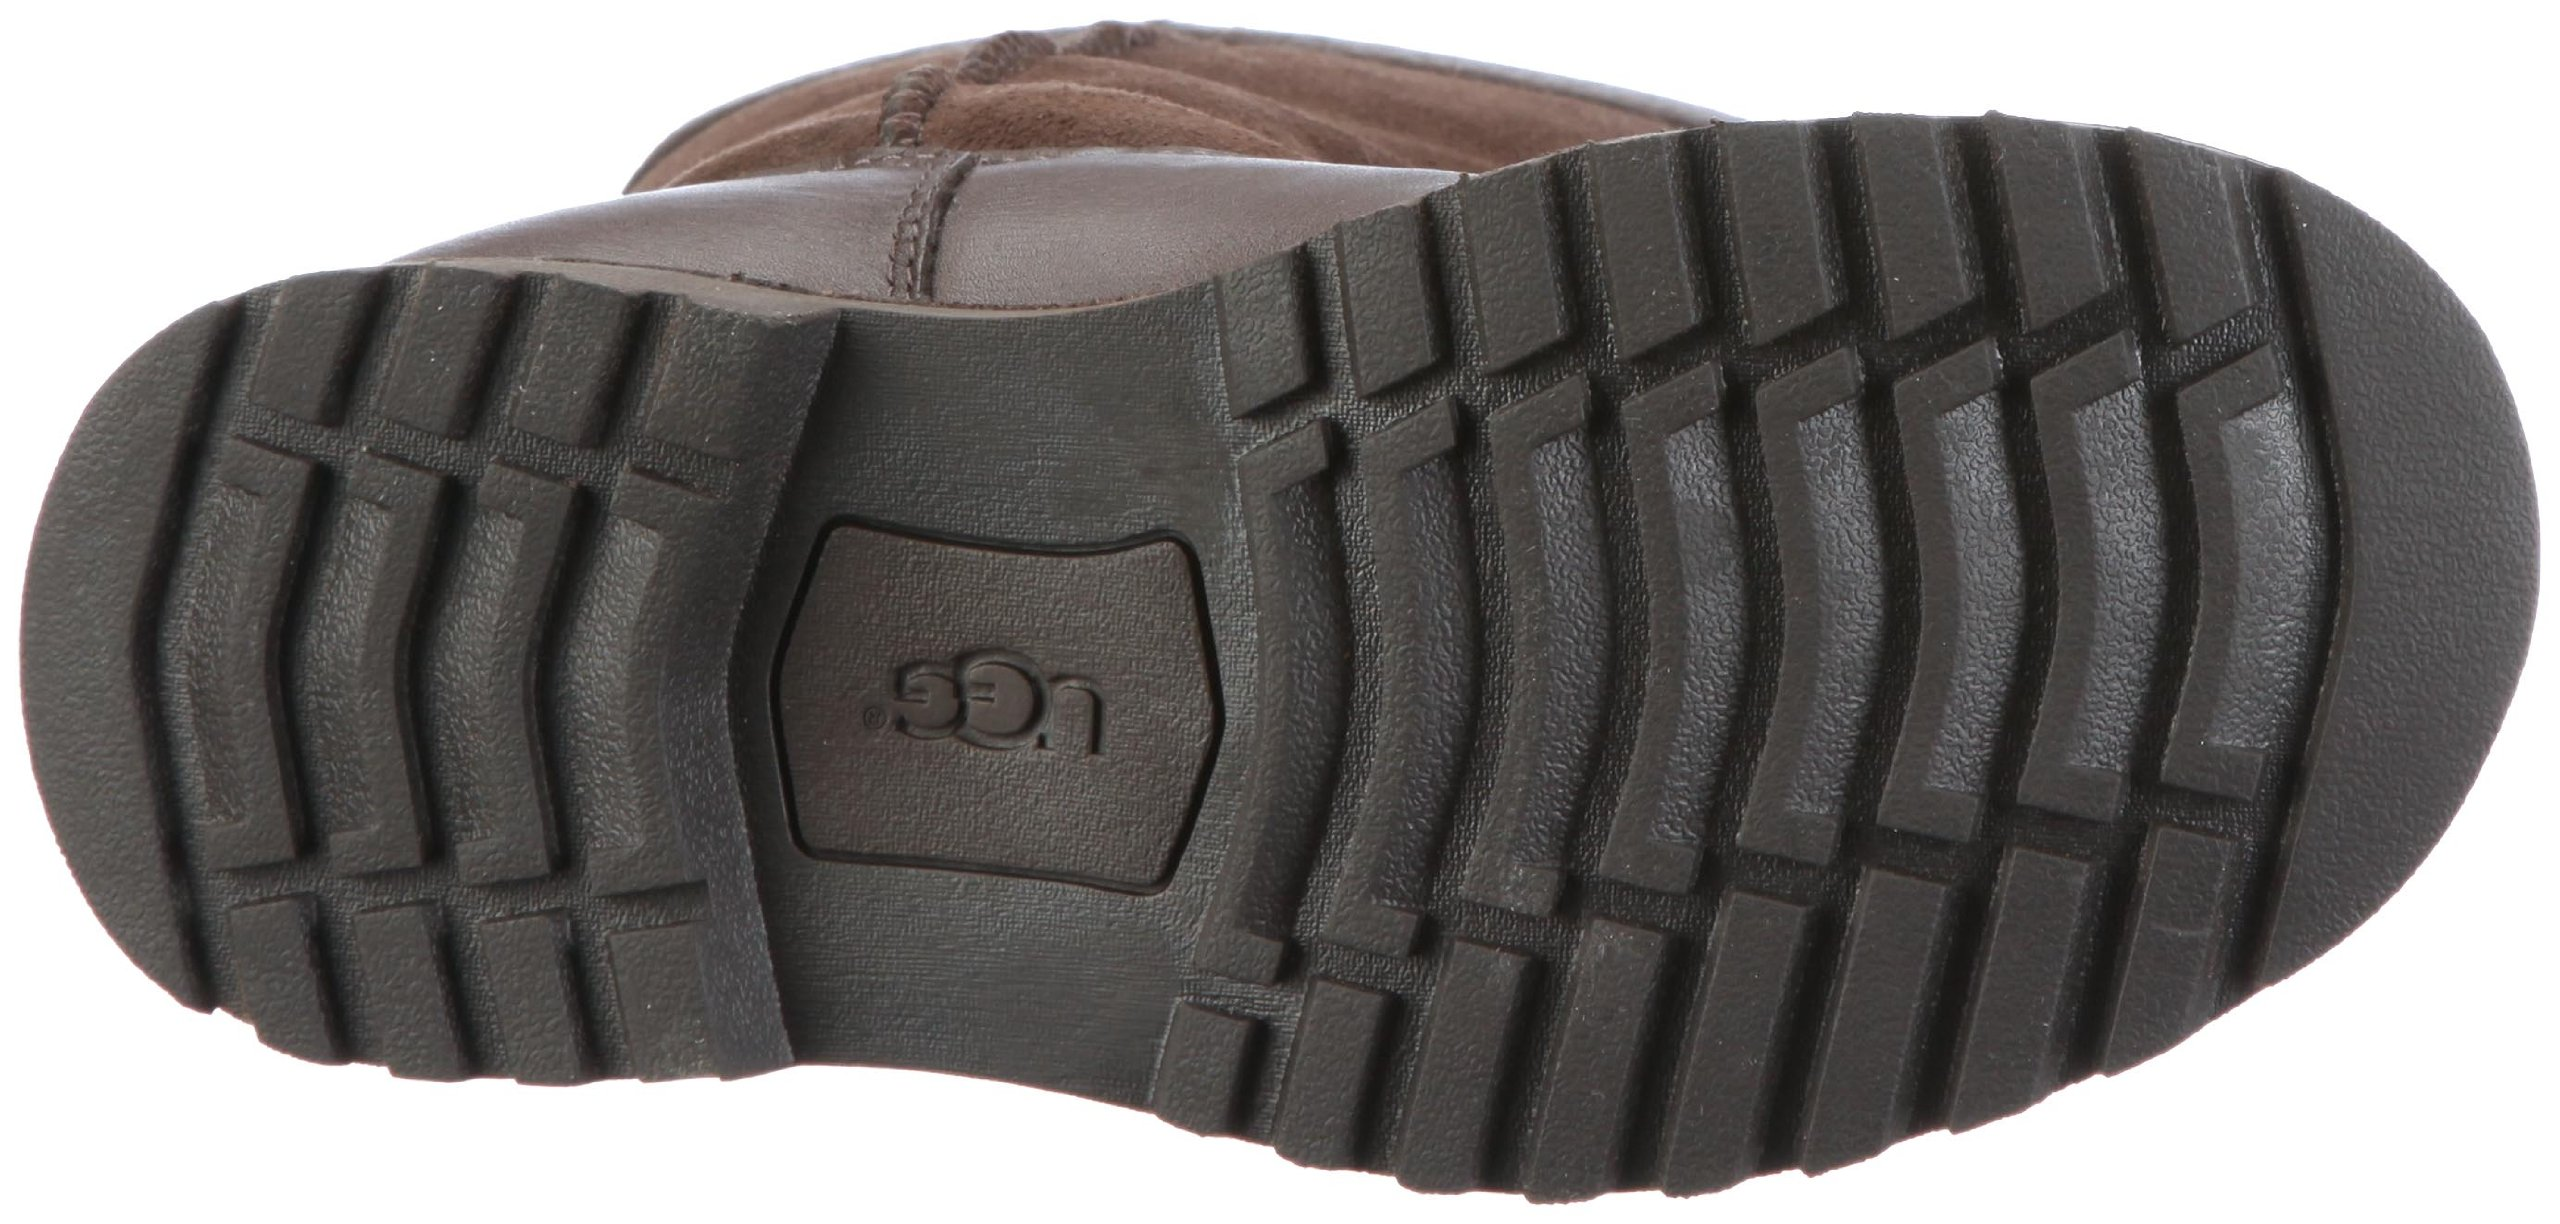 UGG Australia Children's Riverton Suede Boots,Chocolate/Chocolate,5 Child US by UGG (Image #3)